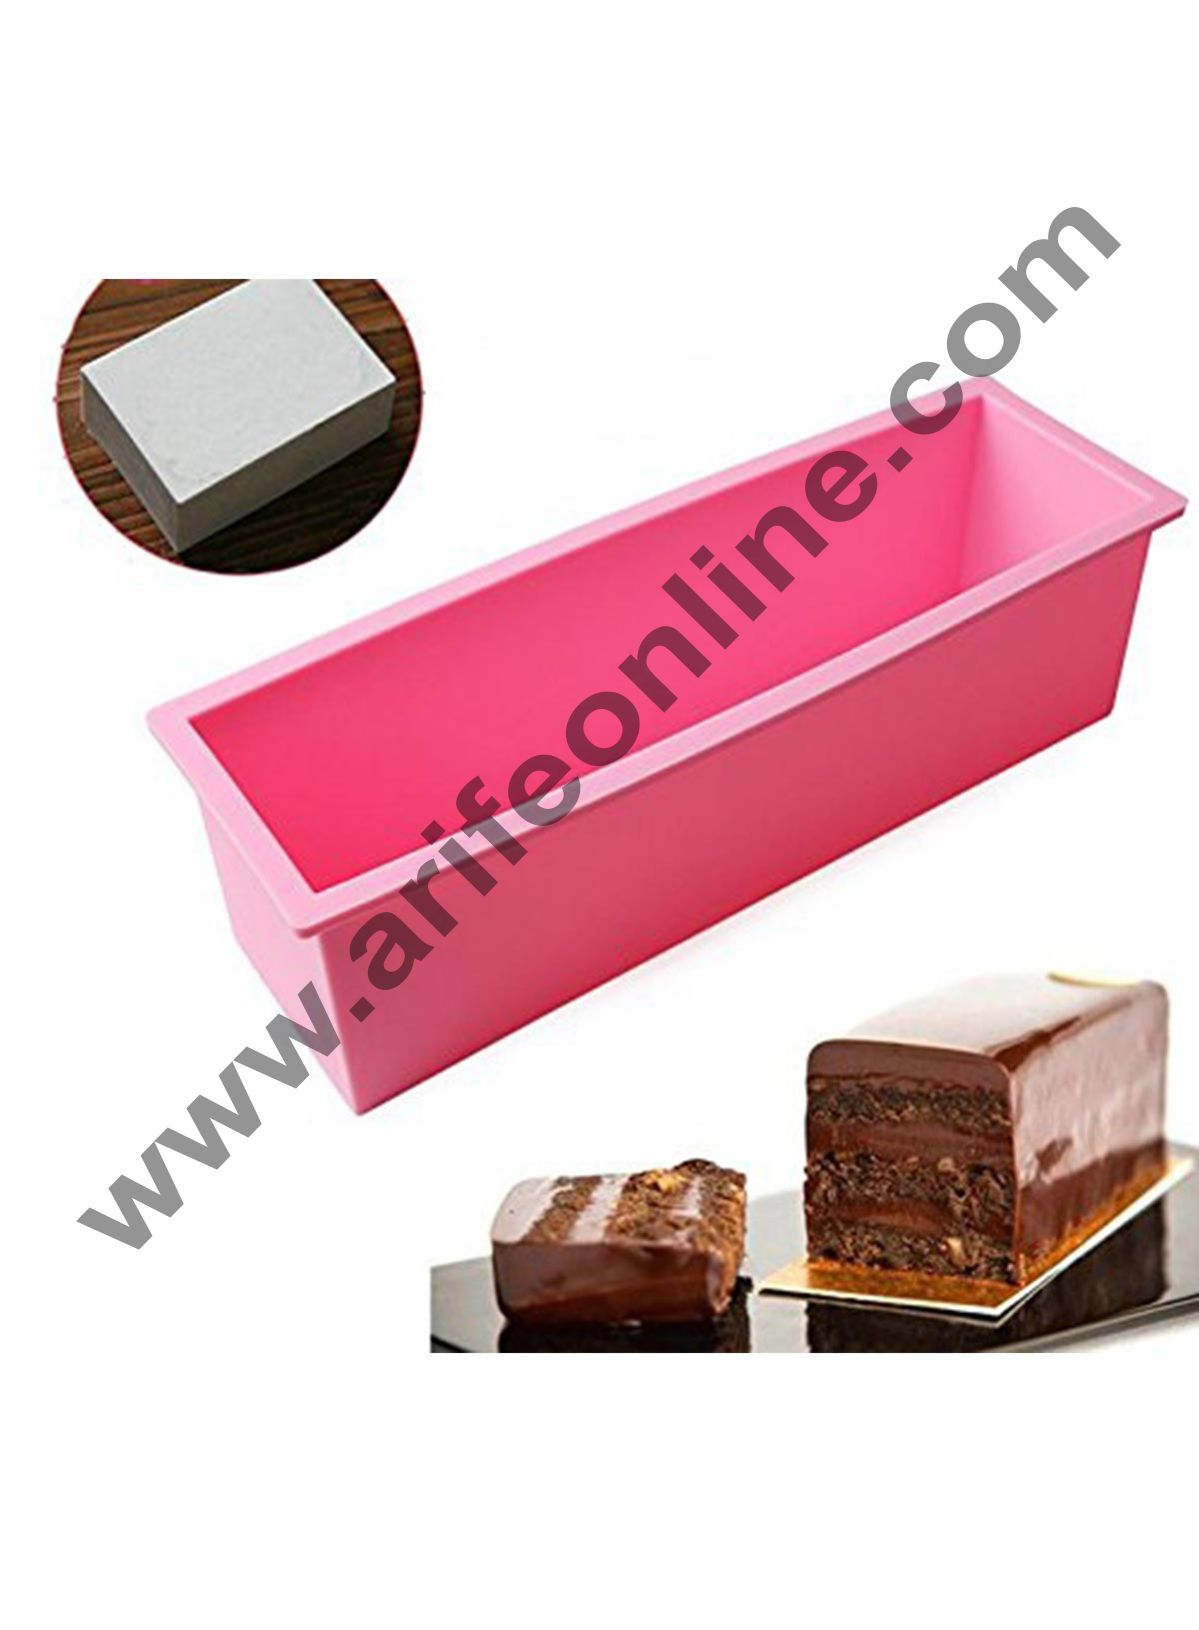 Cake Decor Silicon Rectangular Soap /Cake /Loaf Mold Size :27 x 8.8 x 8 CM (Output Weight : Approx 1.5 Kg)